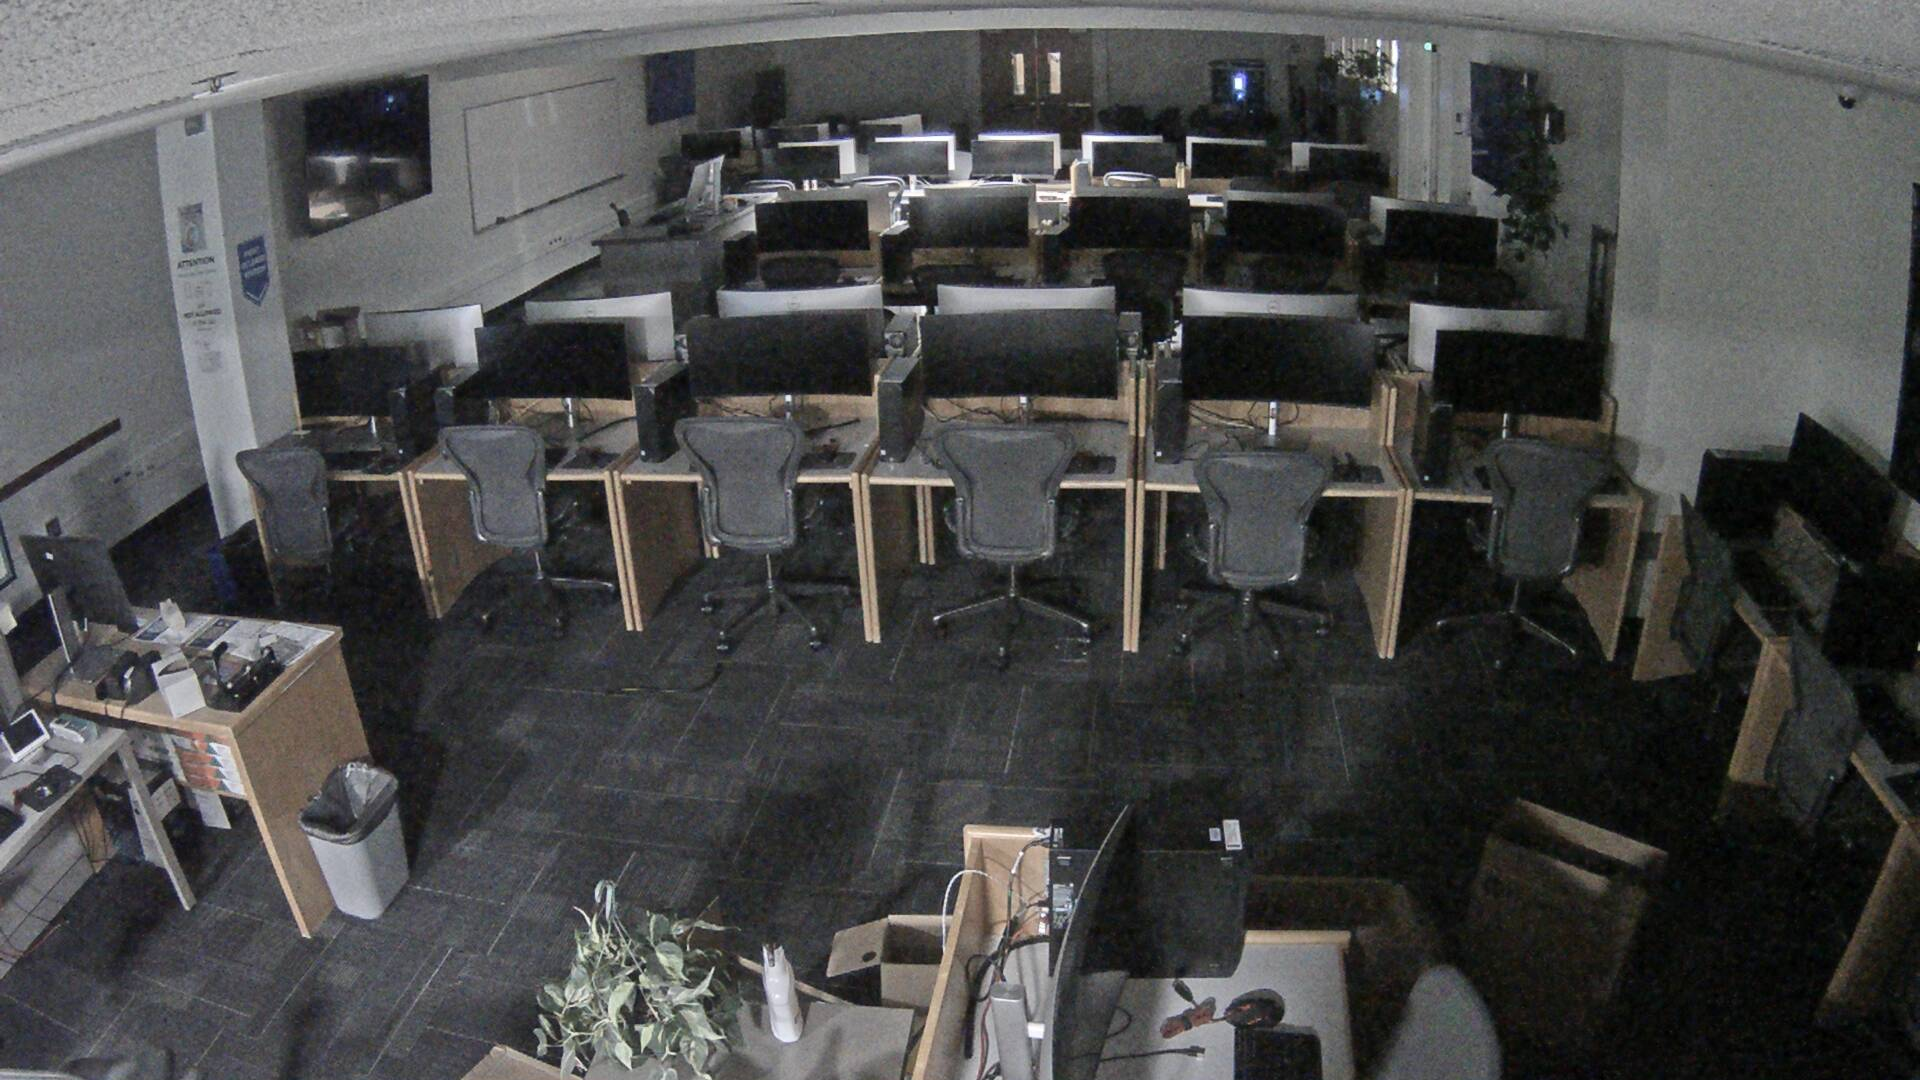 SciTech Library live lab camera